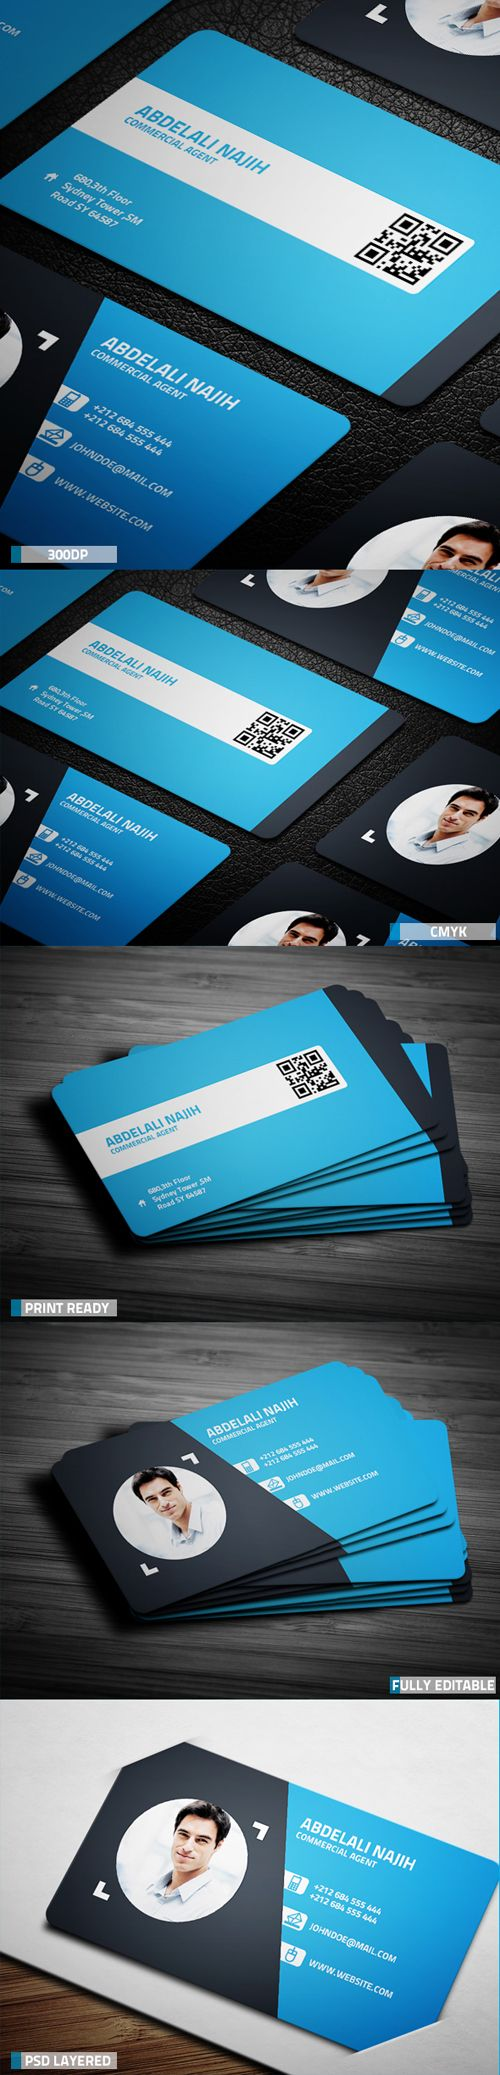 30 best Staff Card images on Pinterest | Corporate identity, Visit ...